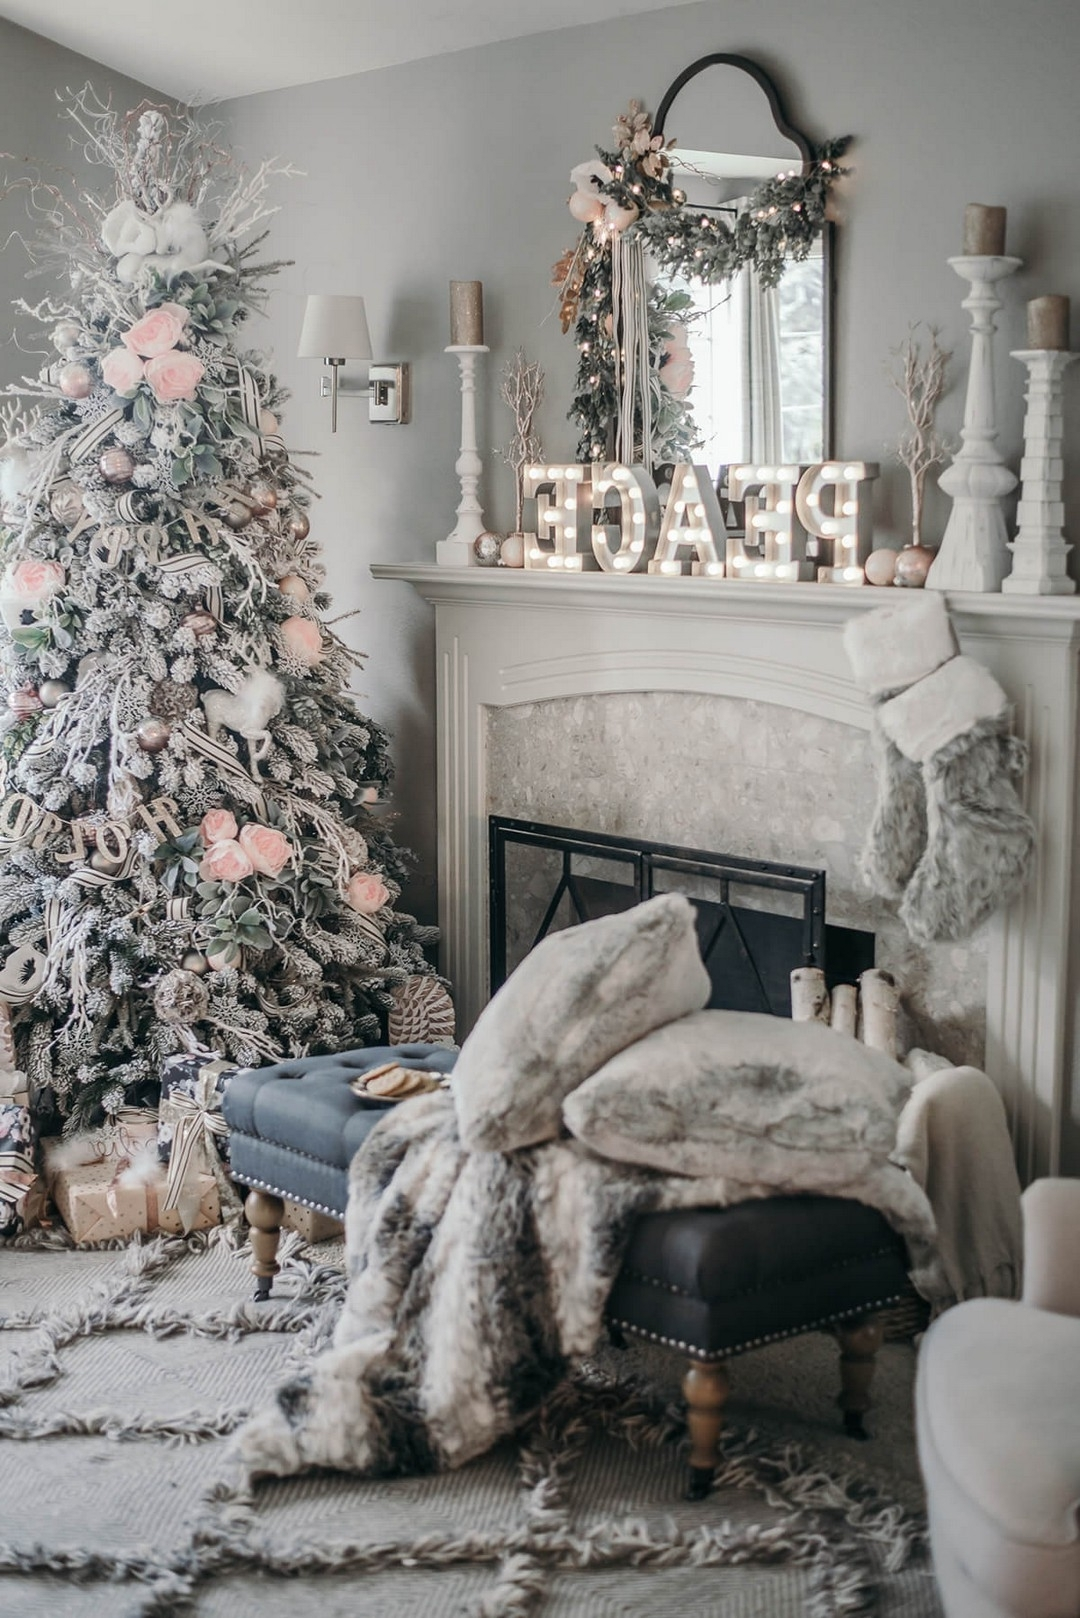 20 32 Christmas Living Room Decor Ideas Fashioning Your Own